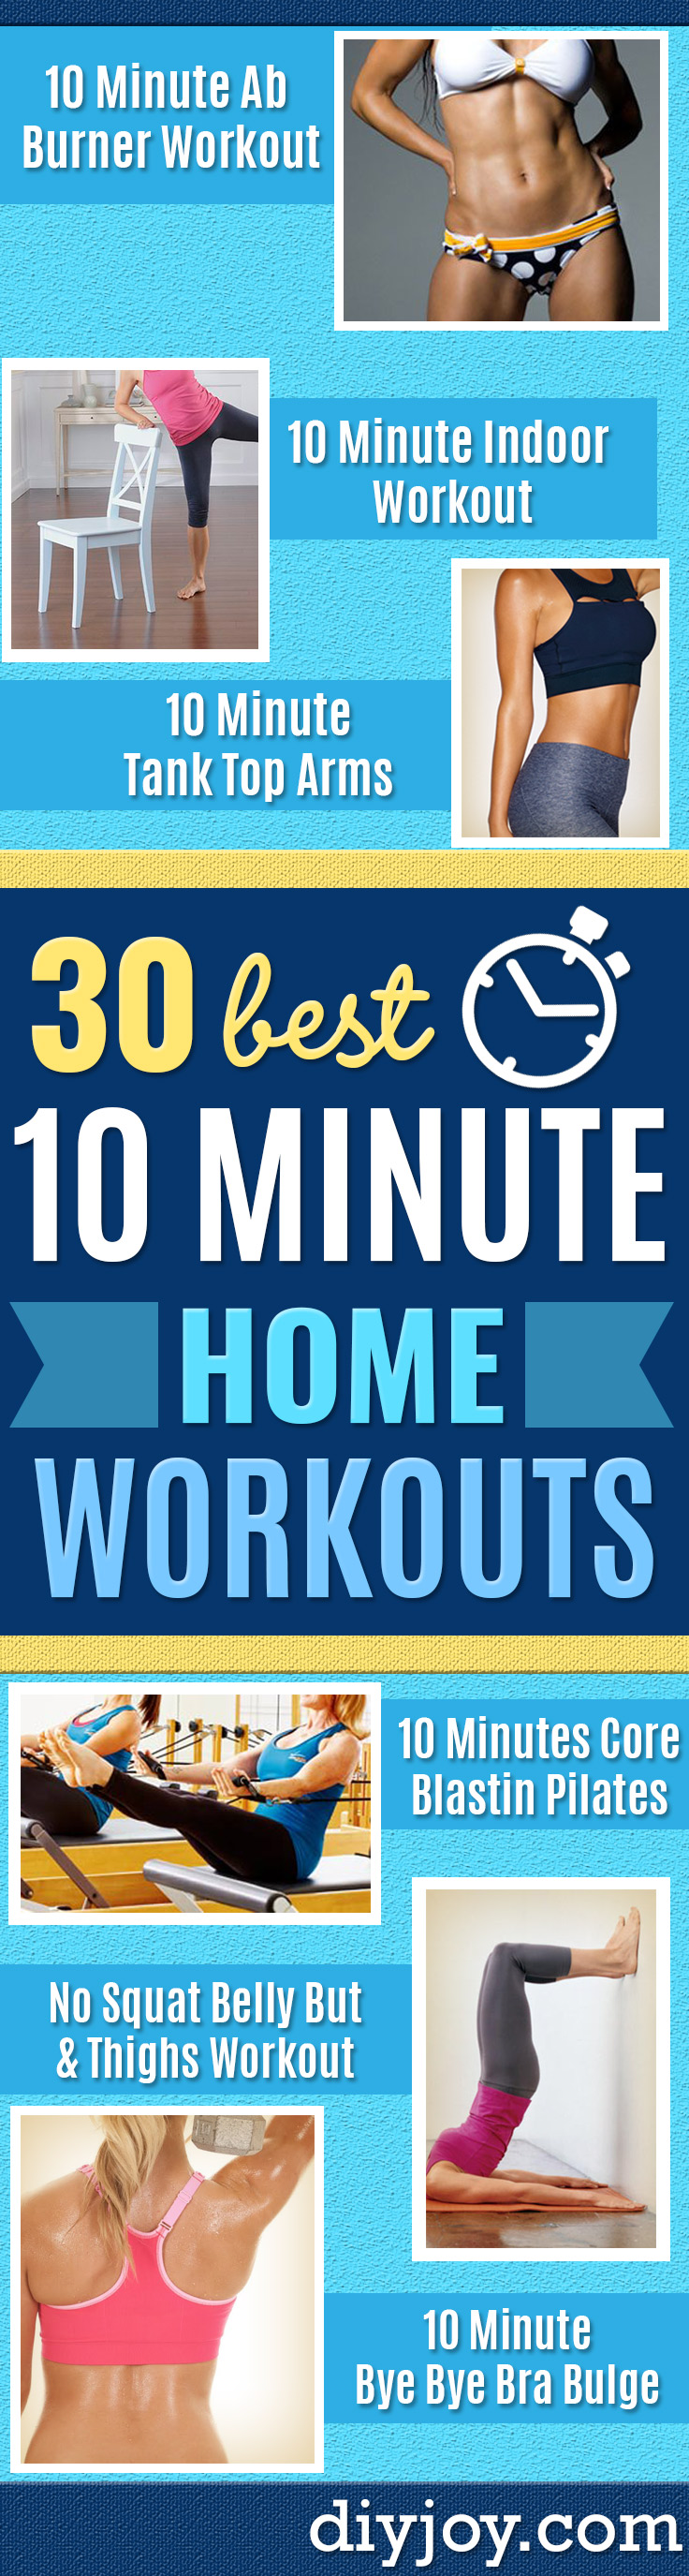 Best Quick At Home Workouts - Easy Tutorials and Work Out Ideas for Strength Training and Exercises - Step by Step Tutorials for Butt Workouts, Abs Tummy and Stomach, Legs, Arms, Chest and Back - Fast 5 and 10 Minute Workouts You Can Do On Your Lunch Break, In Car, in Hotel #exercise #health #workouts